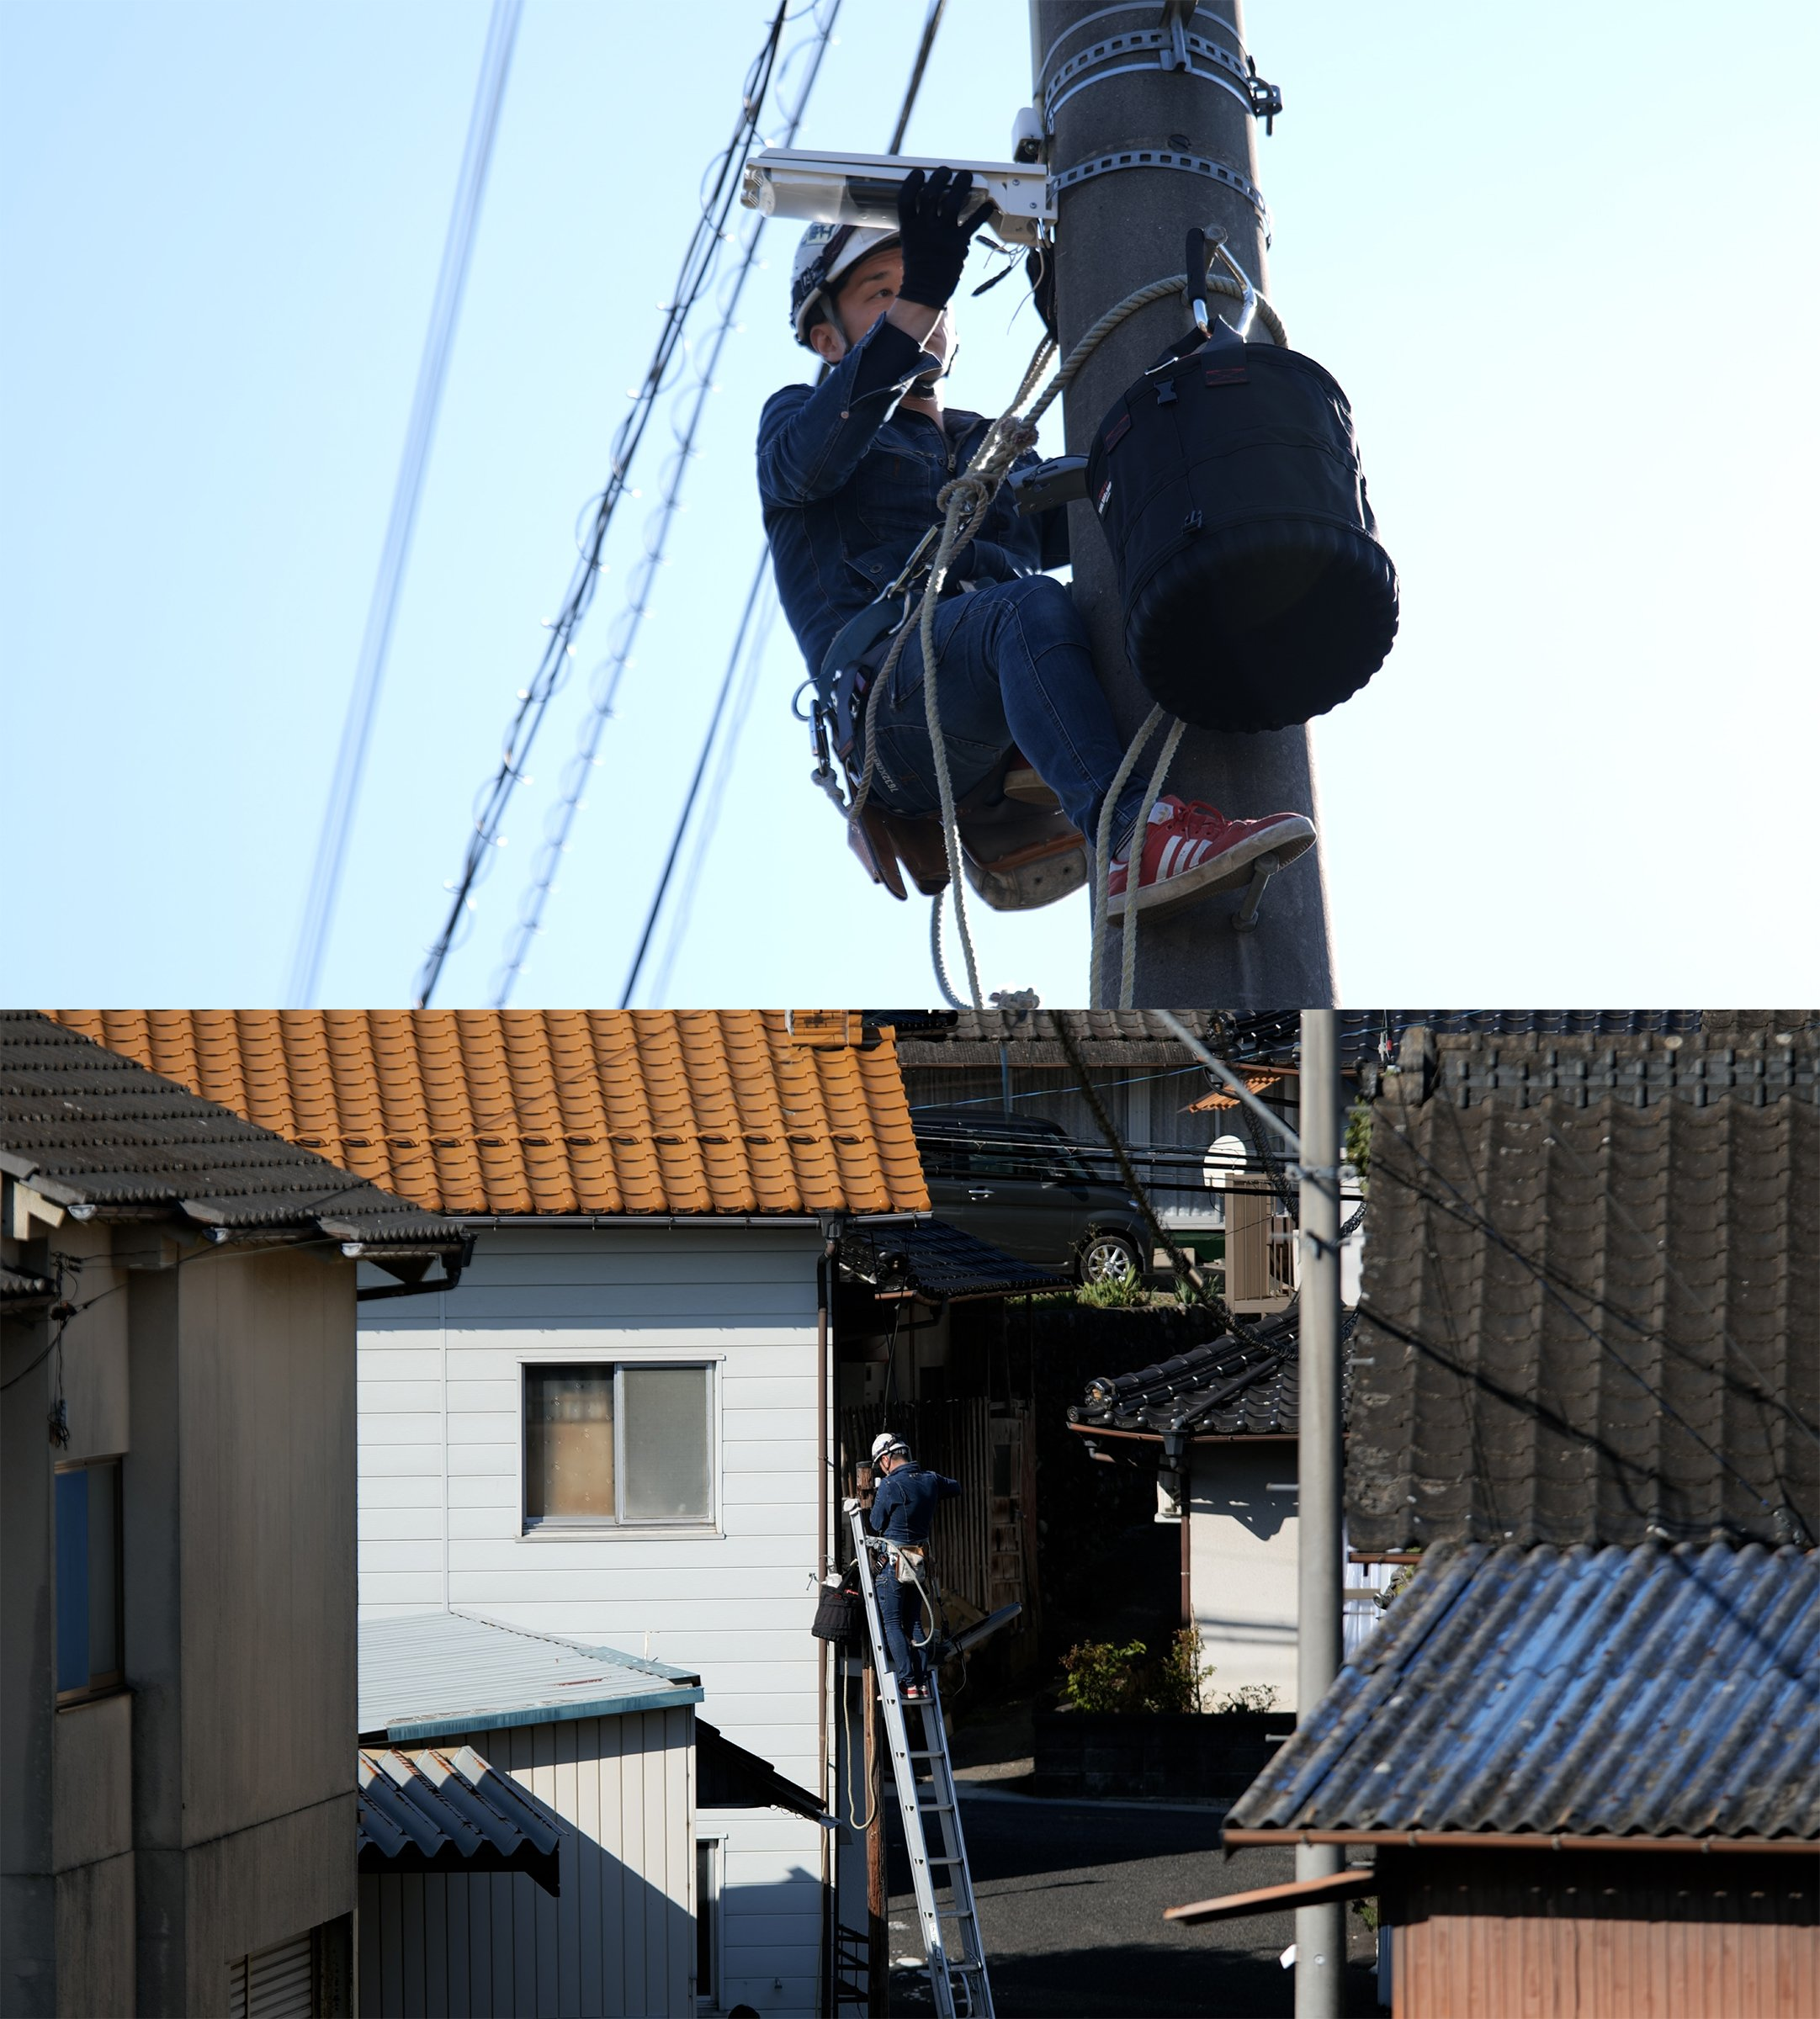 Photo: Working to replace white LED lights with IDA-certified security lighting.